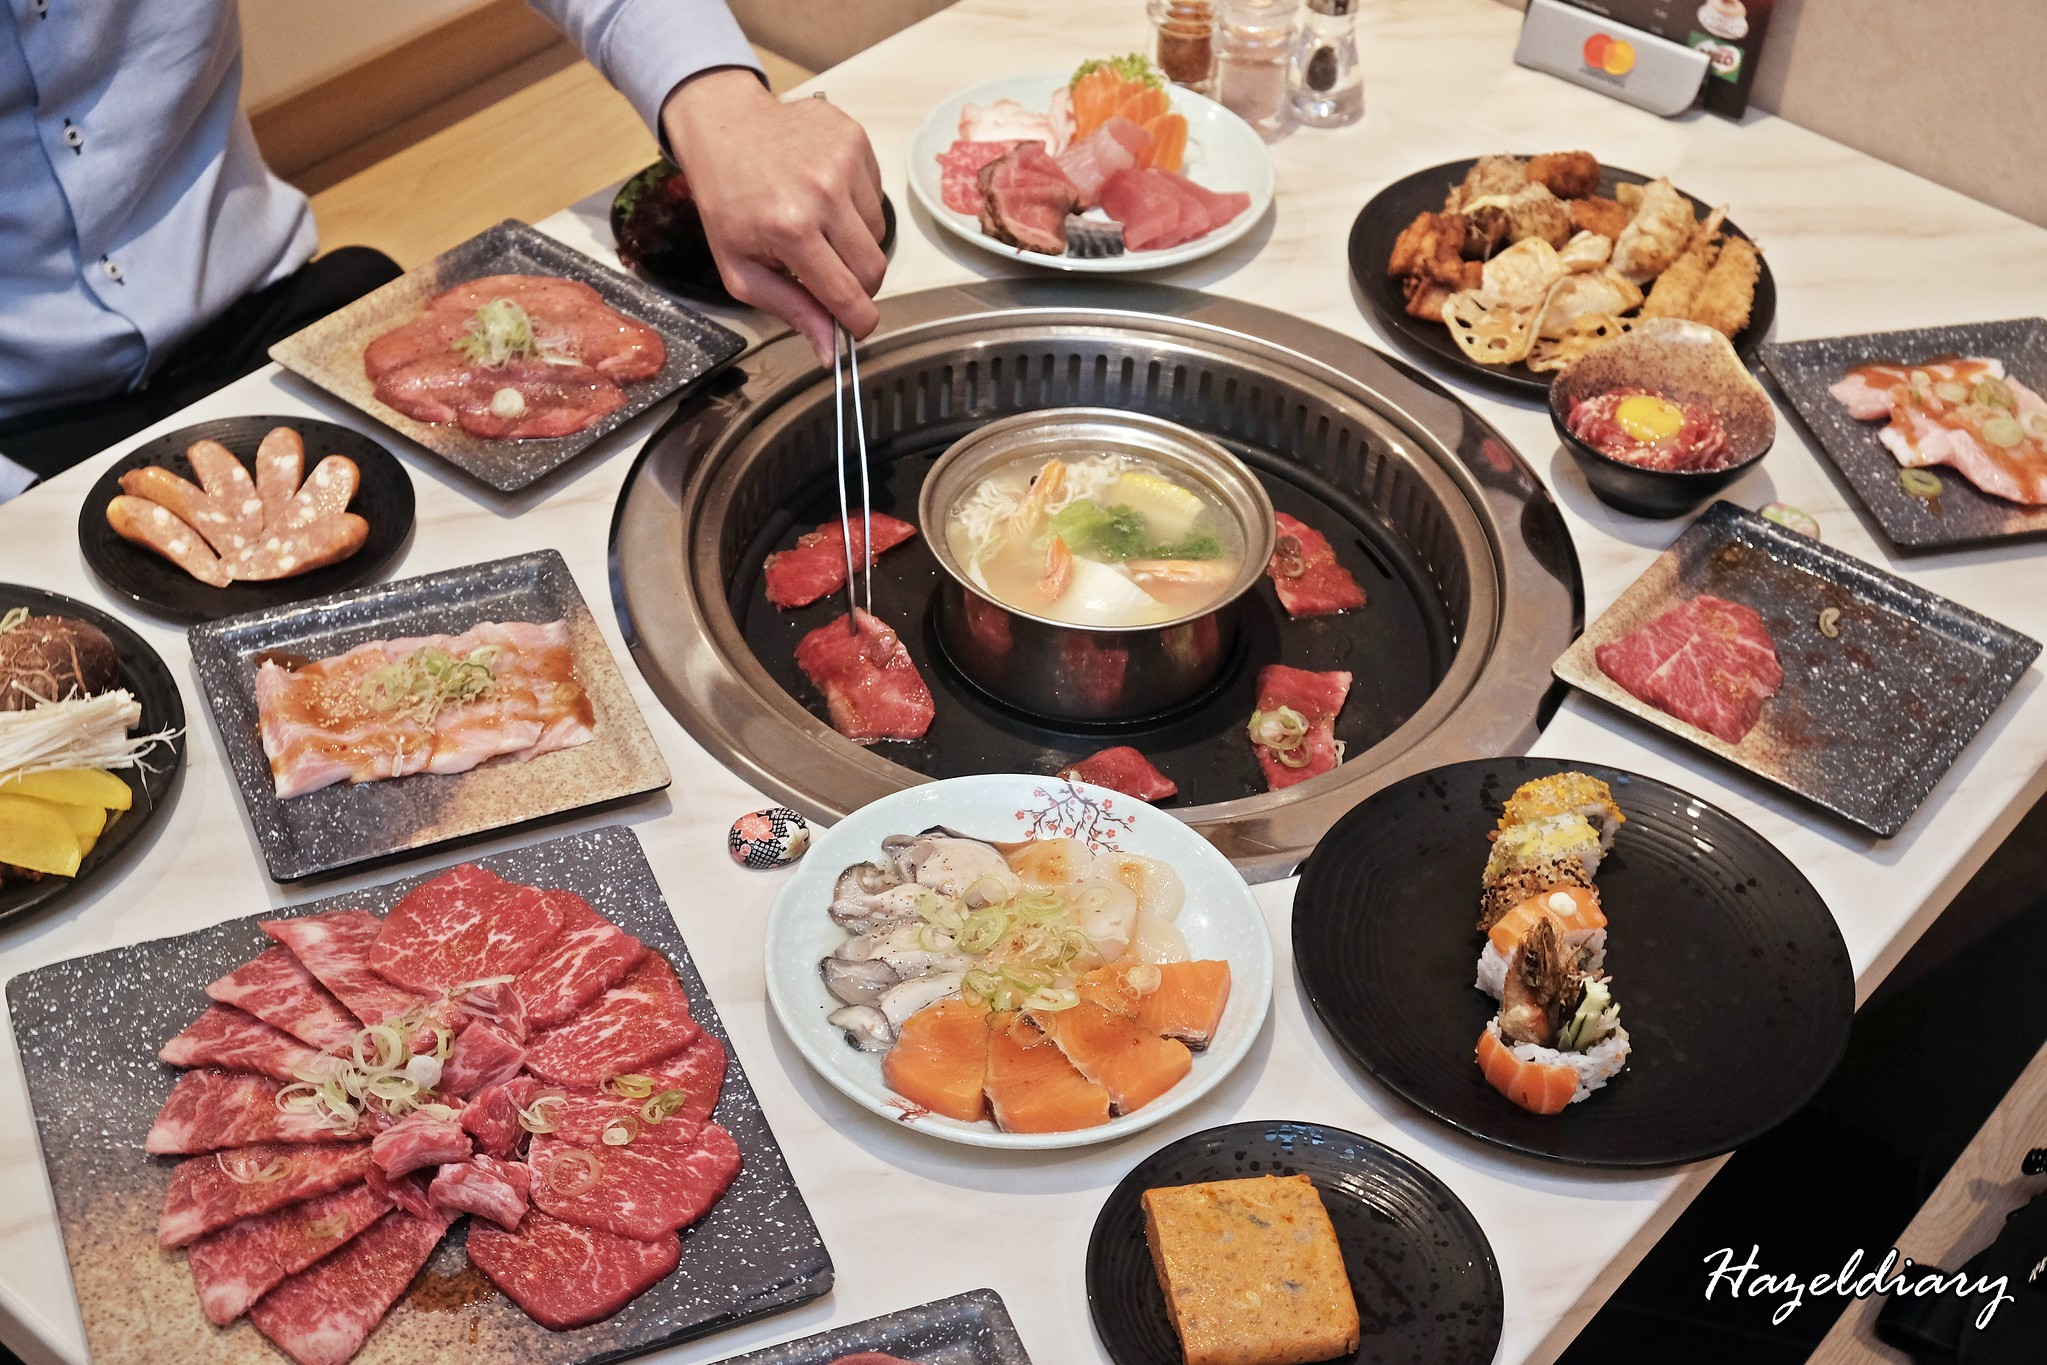 [SG EATS] Tenkaichi Japanese BBQ Restaurant At Cineleisure Mall